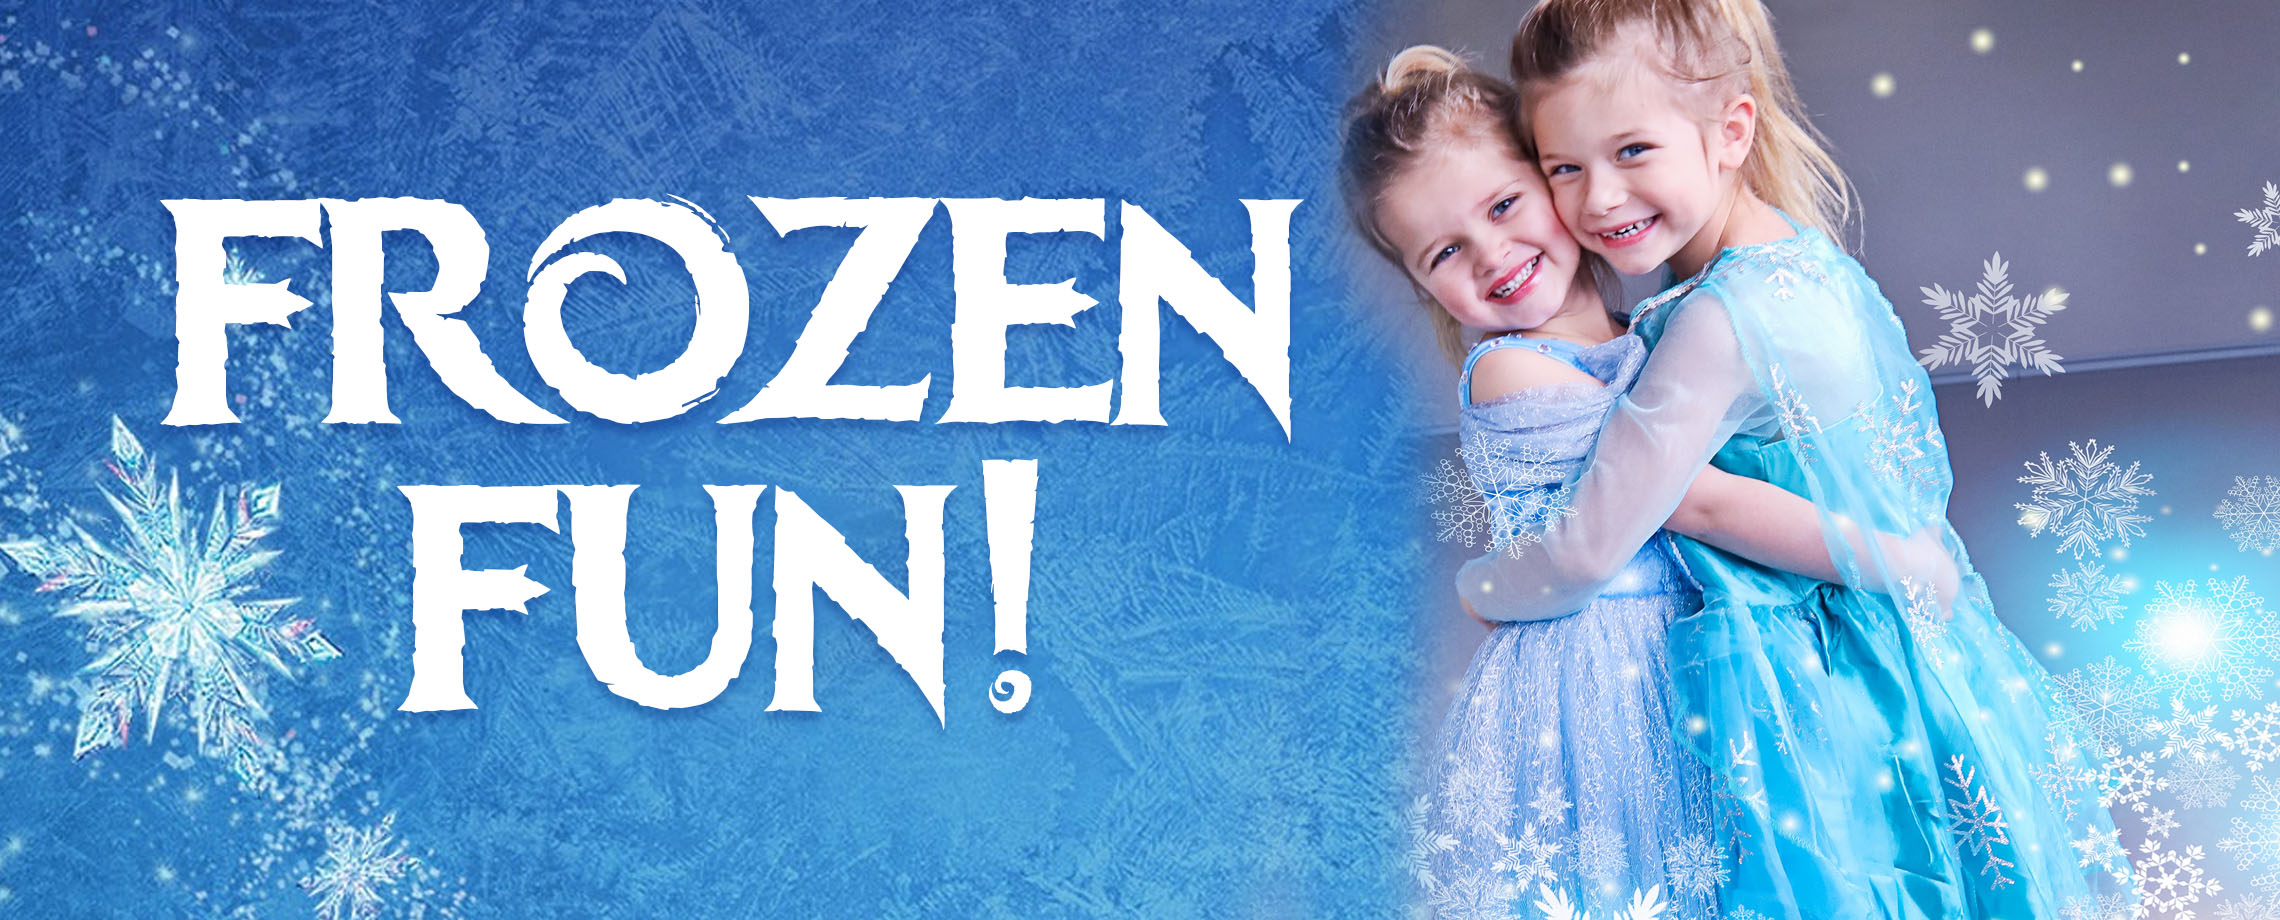 Frozen Fun Slider